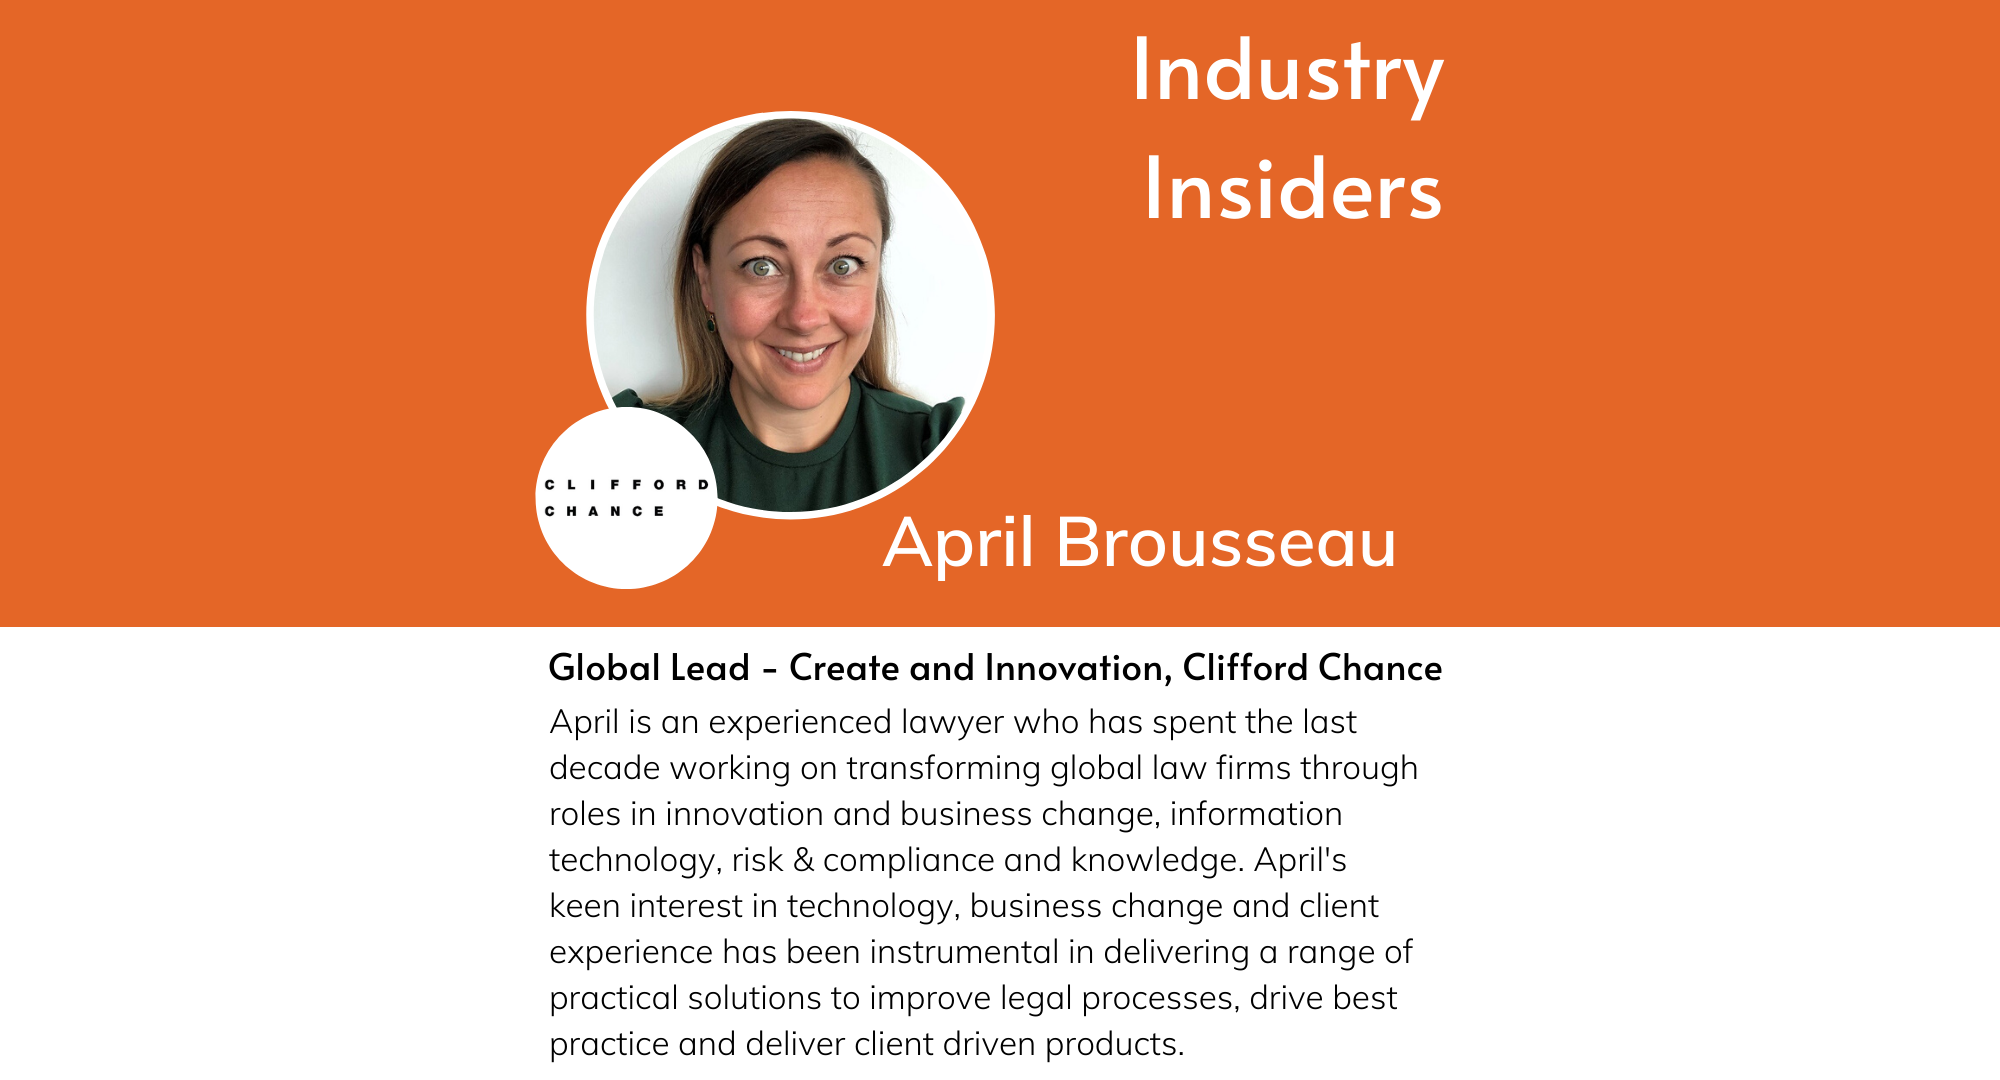 Industry Insiders - Innovating Inside a Law Firm